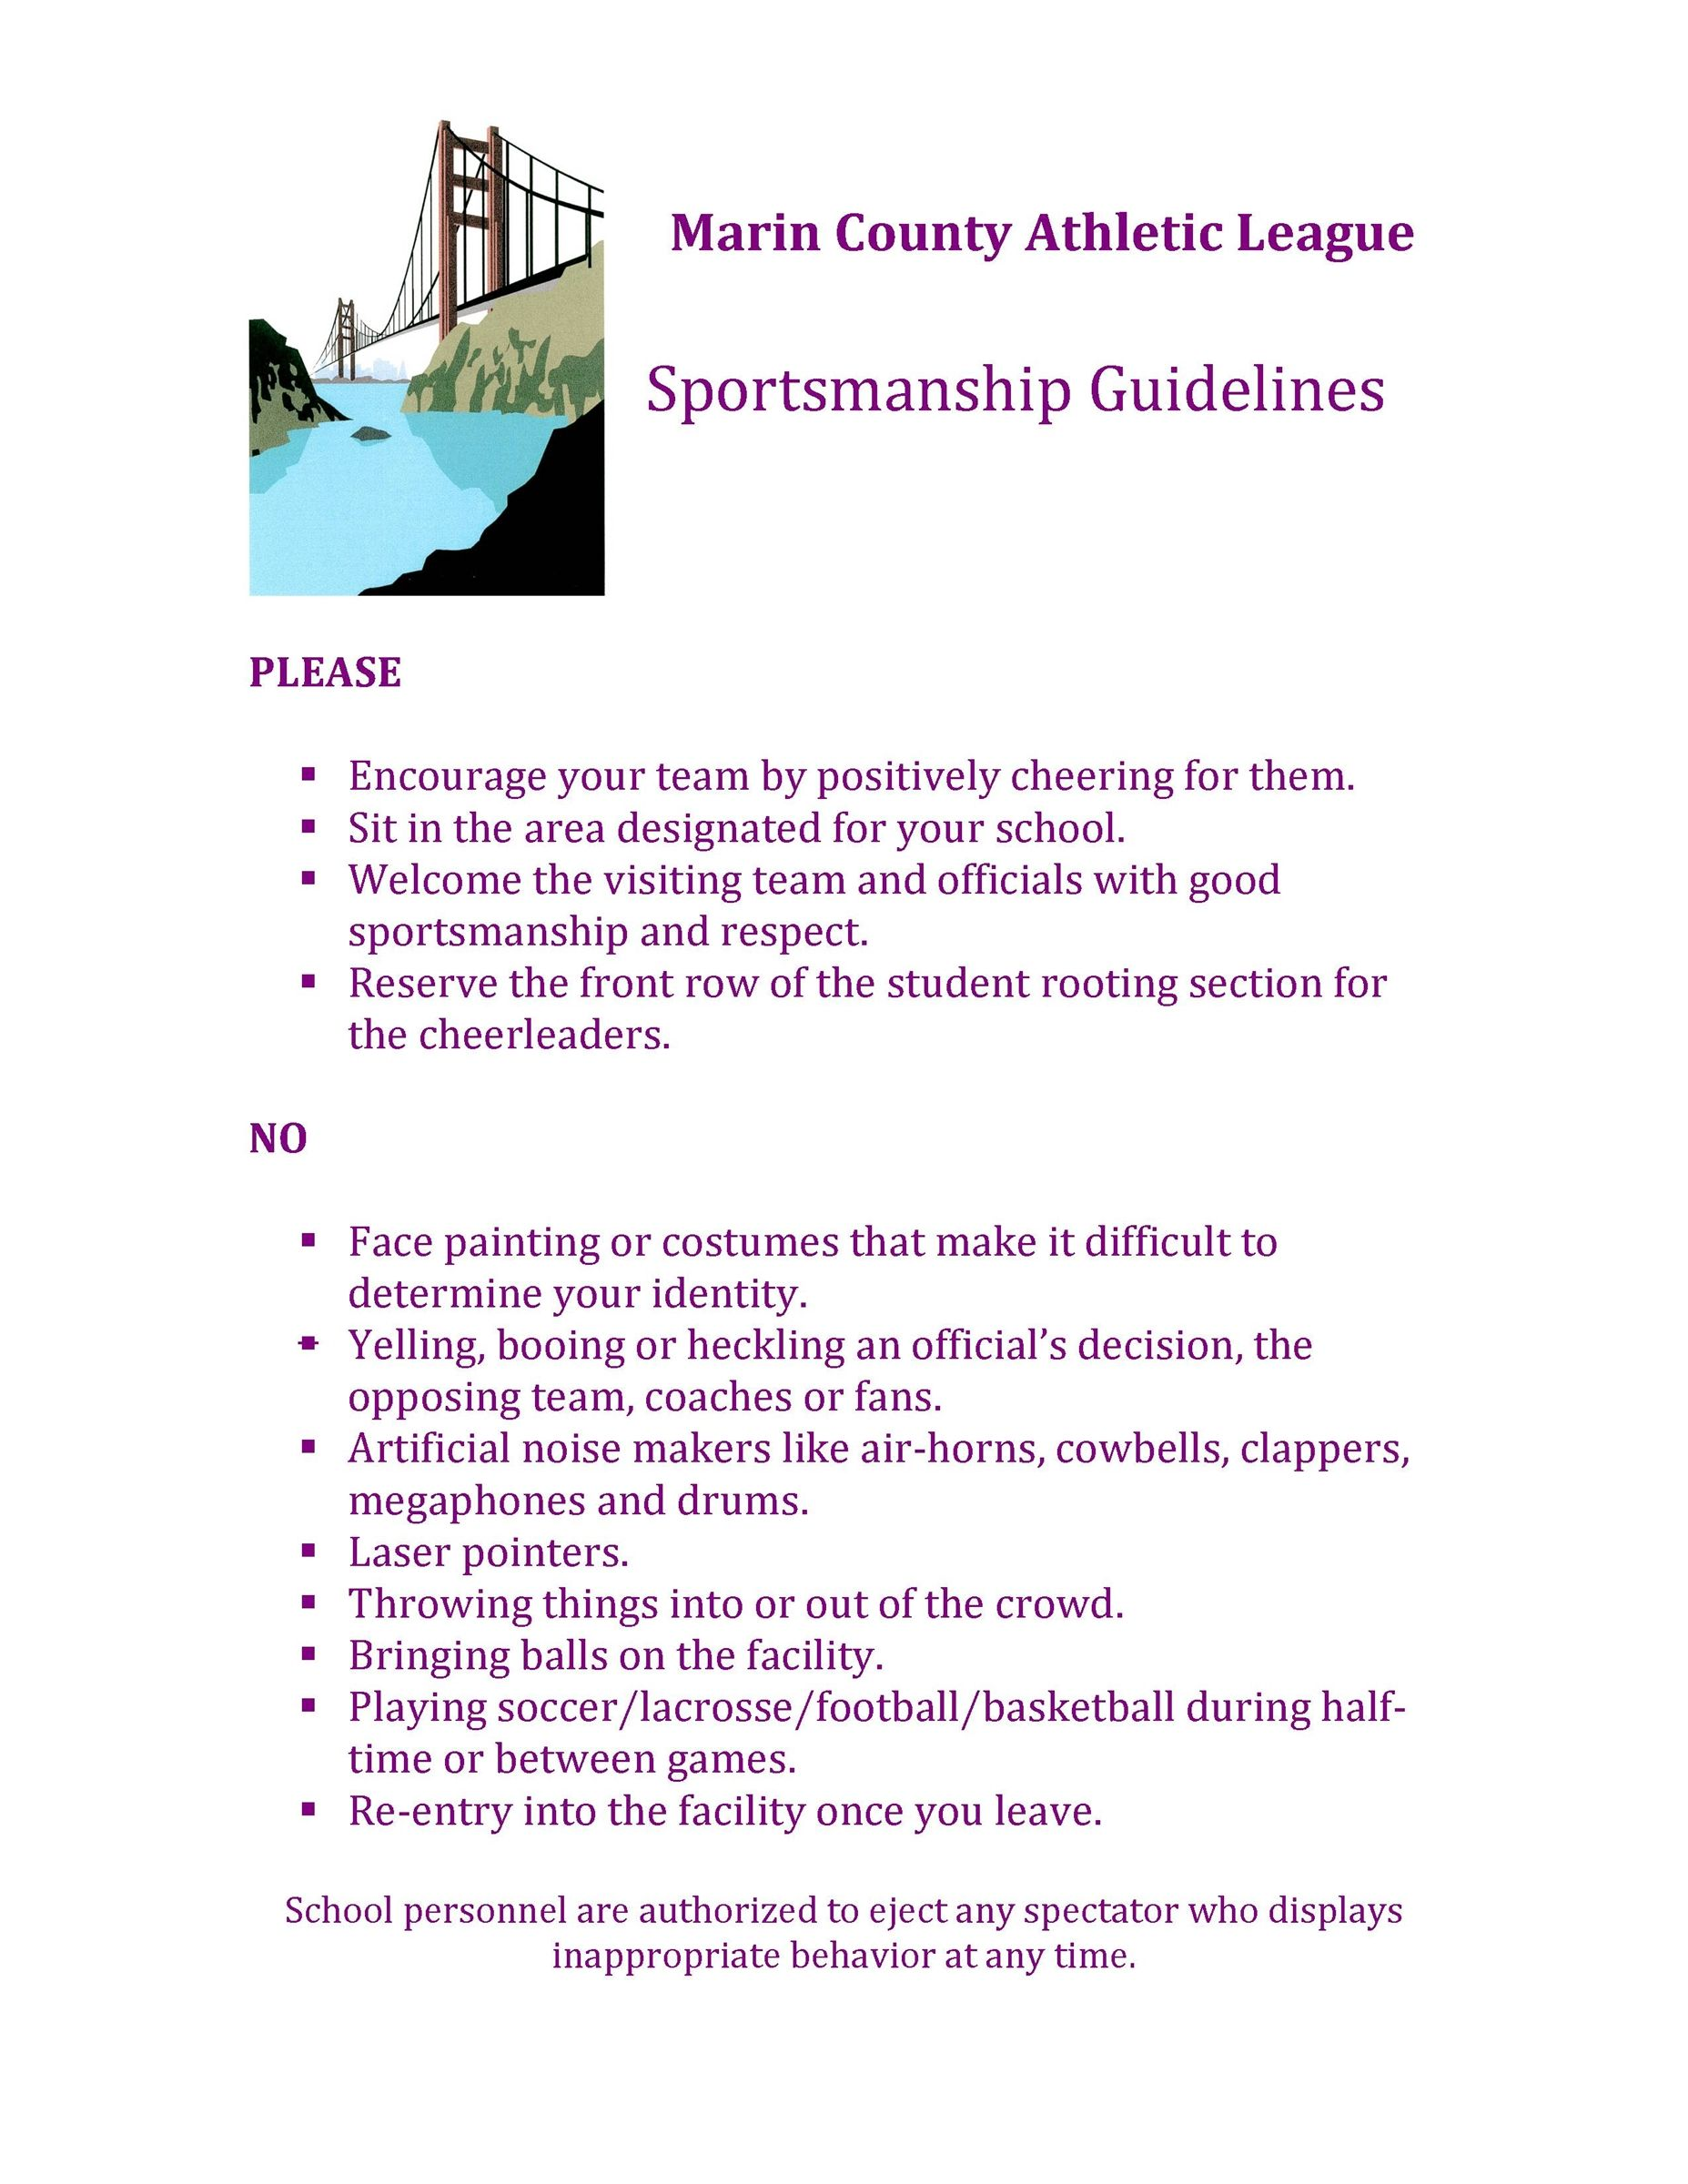 MCAL Sports Guidelines